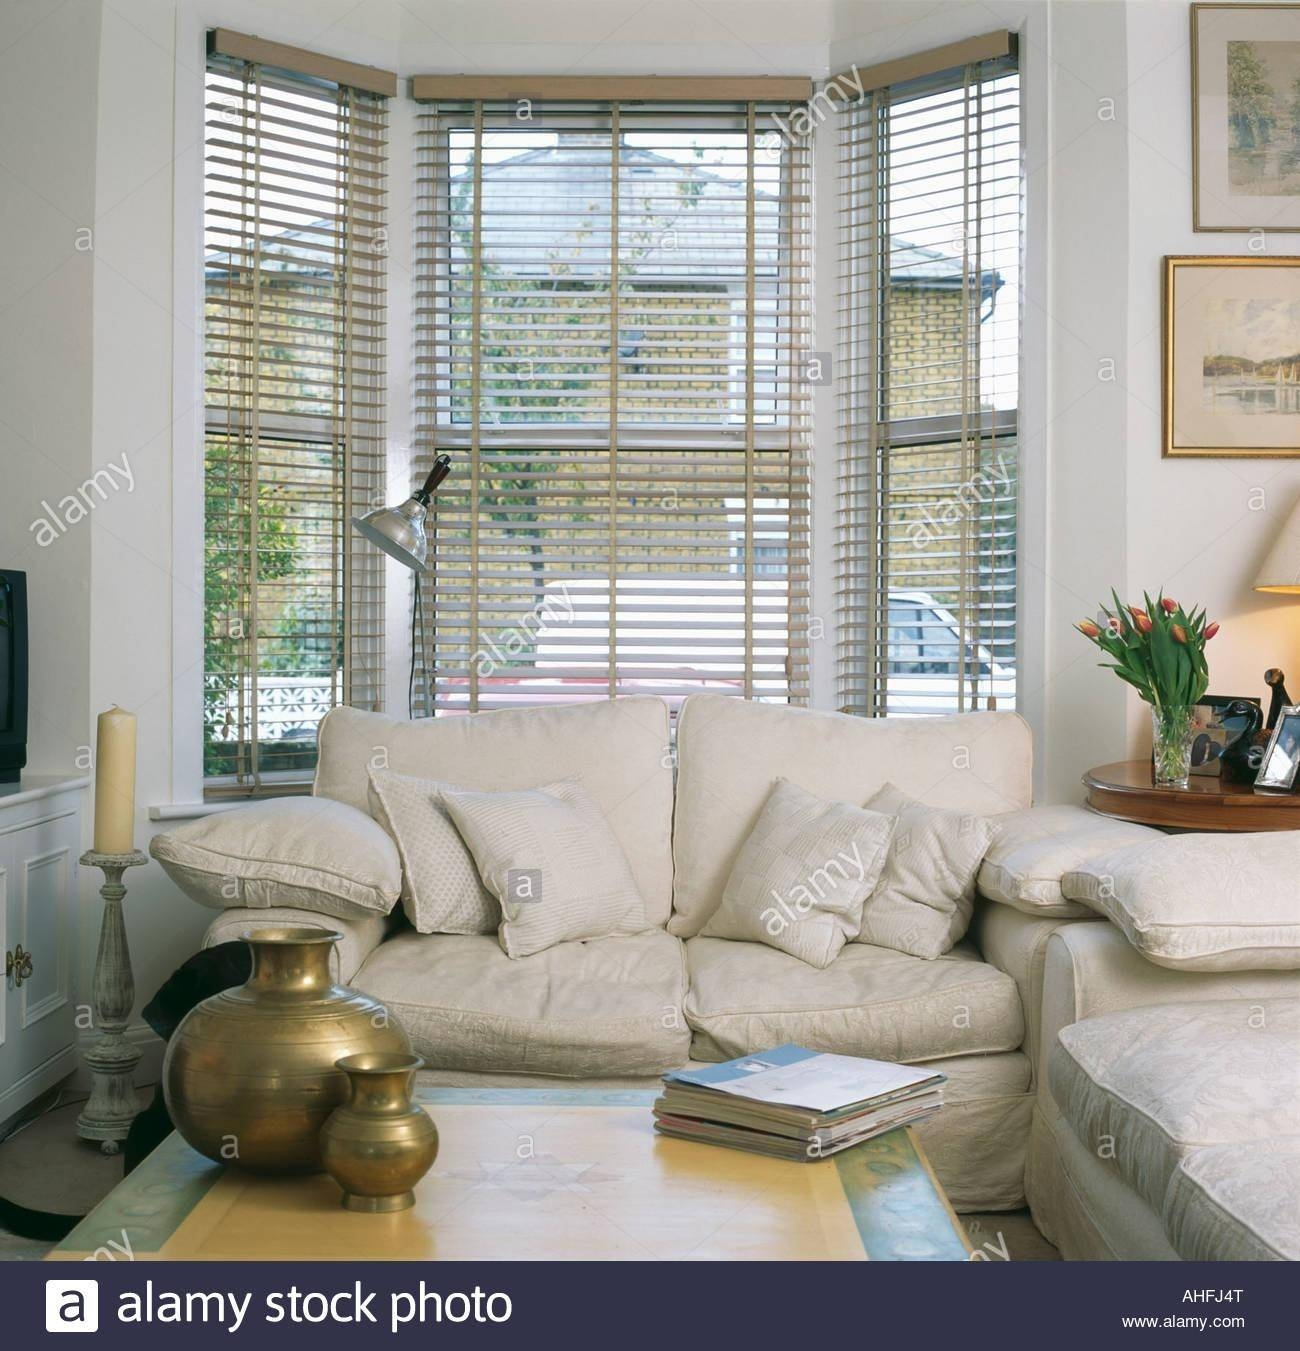 20+ Choices Of Sofas For Bay Window | Sofa Ideas intended for Window Sofas (Image 3 of 15)